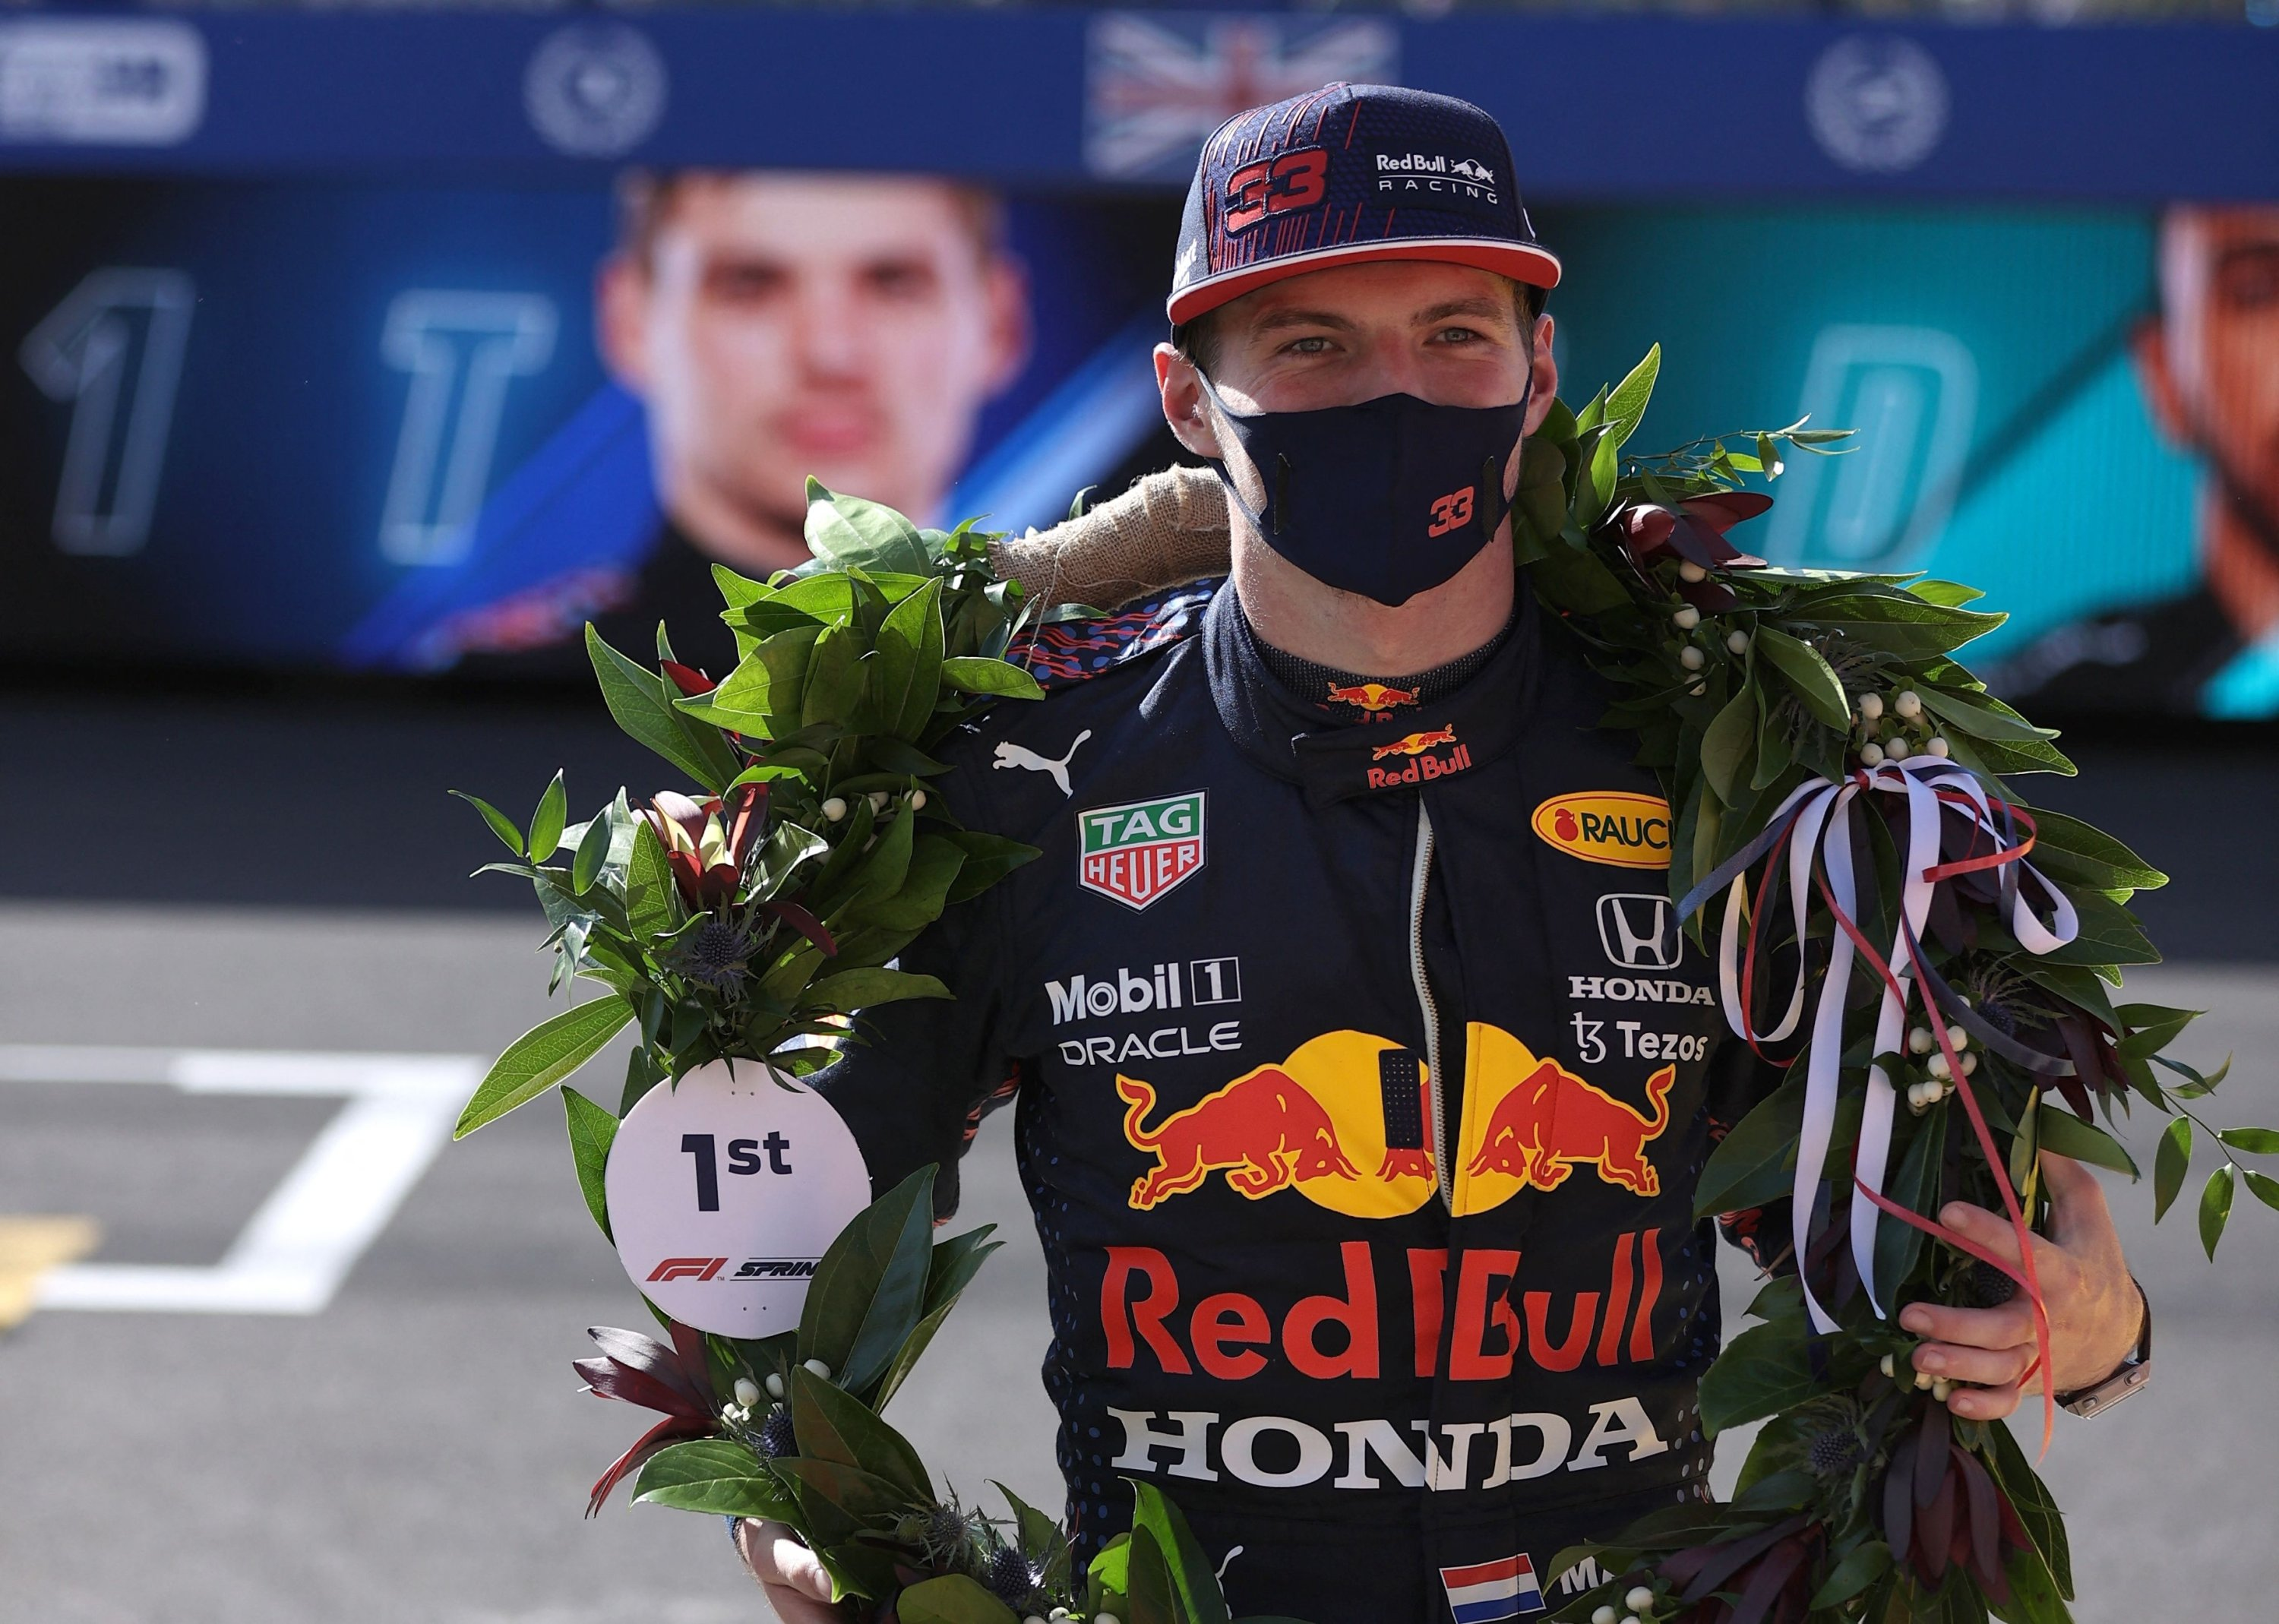 Red Bull's Dutch driver Max Verstappen wears the winner's laurel wreath as he celebrates attaining pole position for the Formula One British Grand Prix at the Silverstone Circuit, Silverstone, central England, July 17, 2021. (AFP Photo)